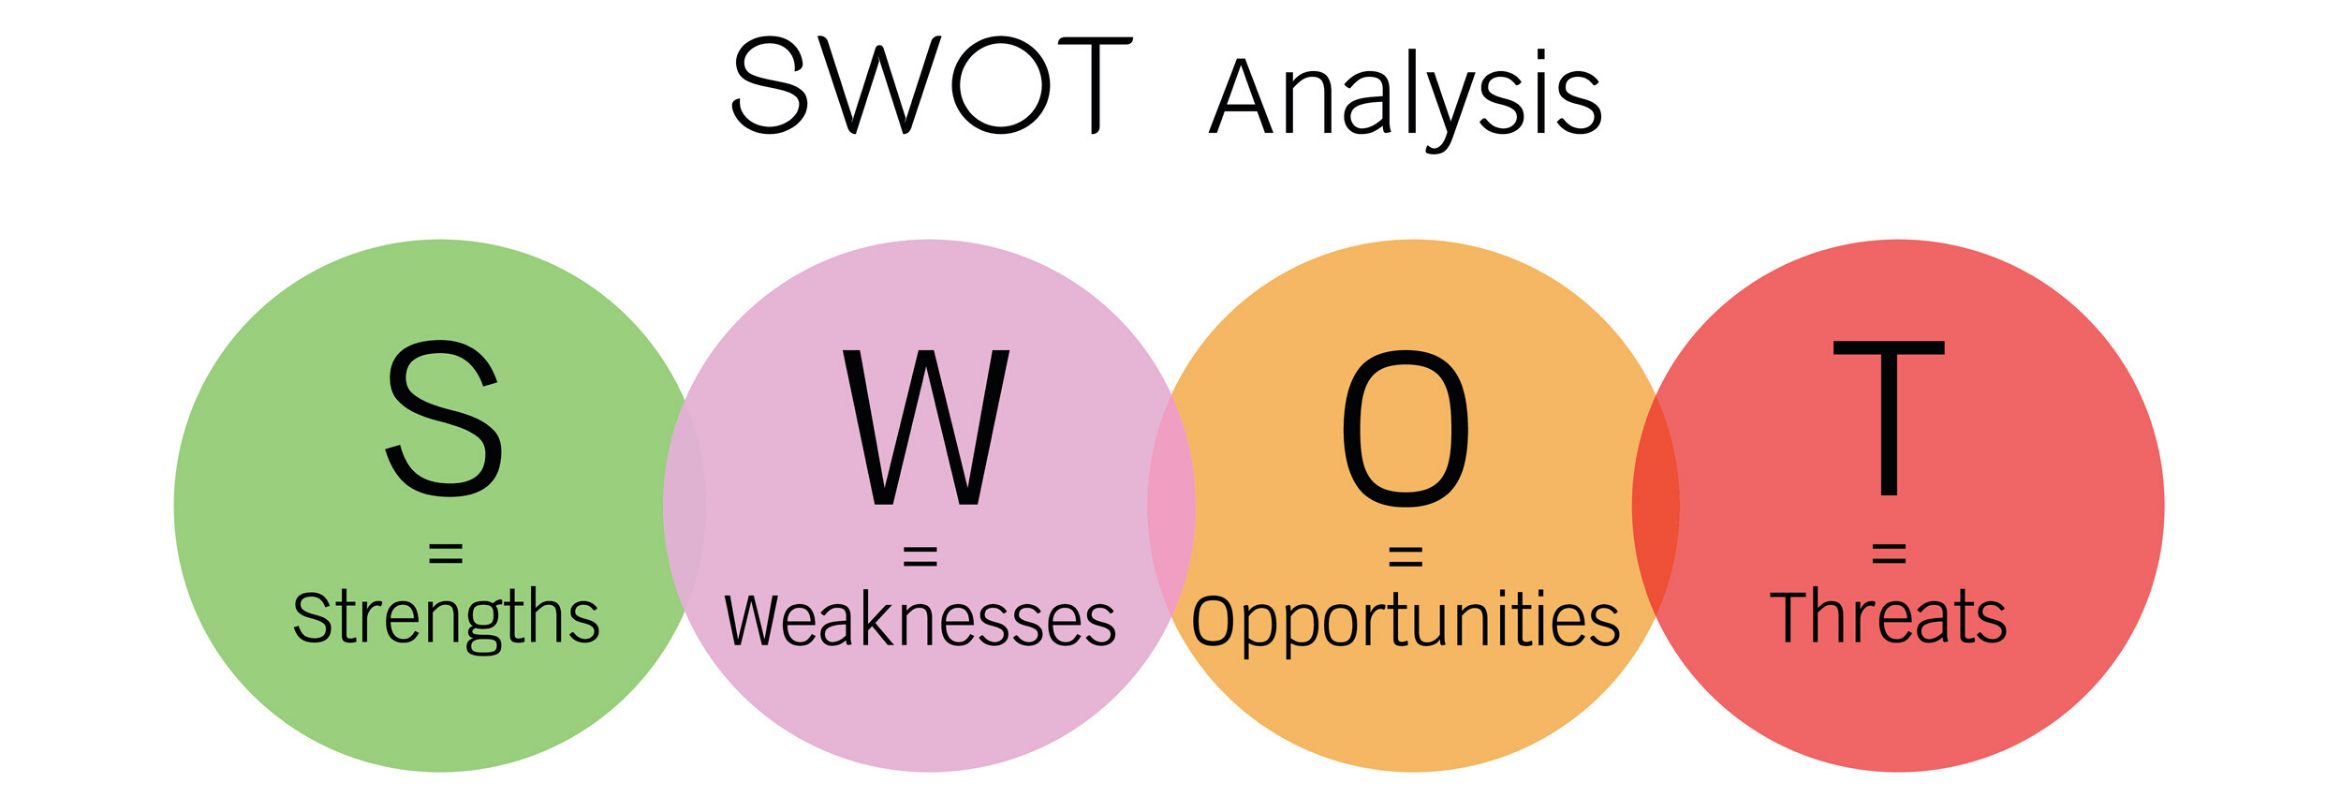 SWOT Analysis graph